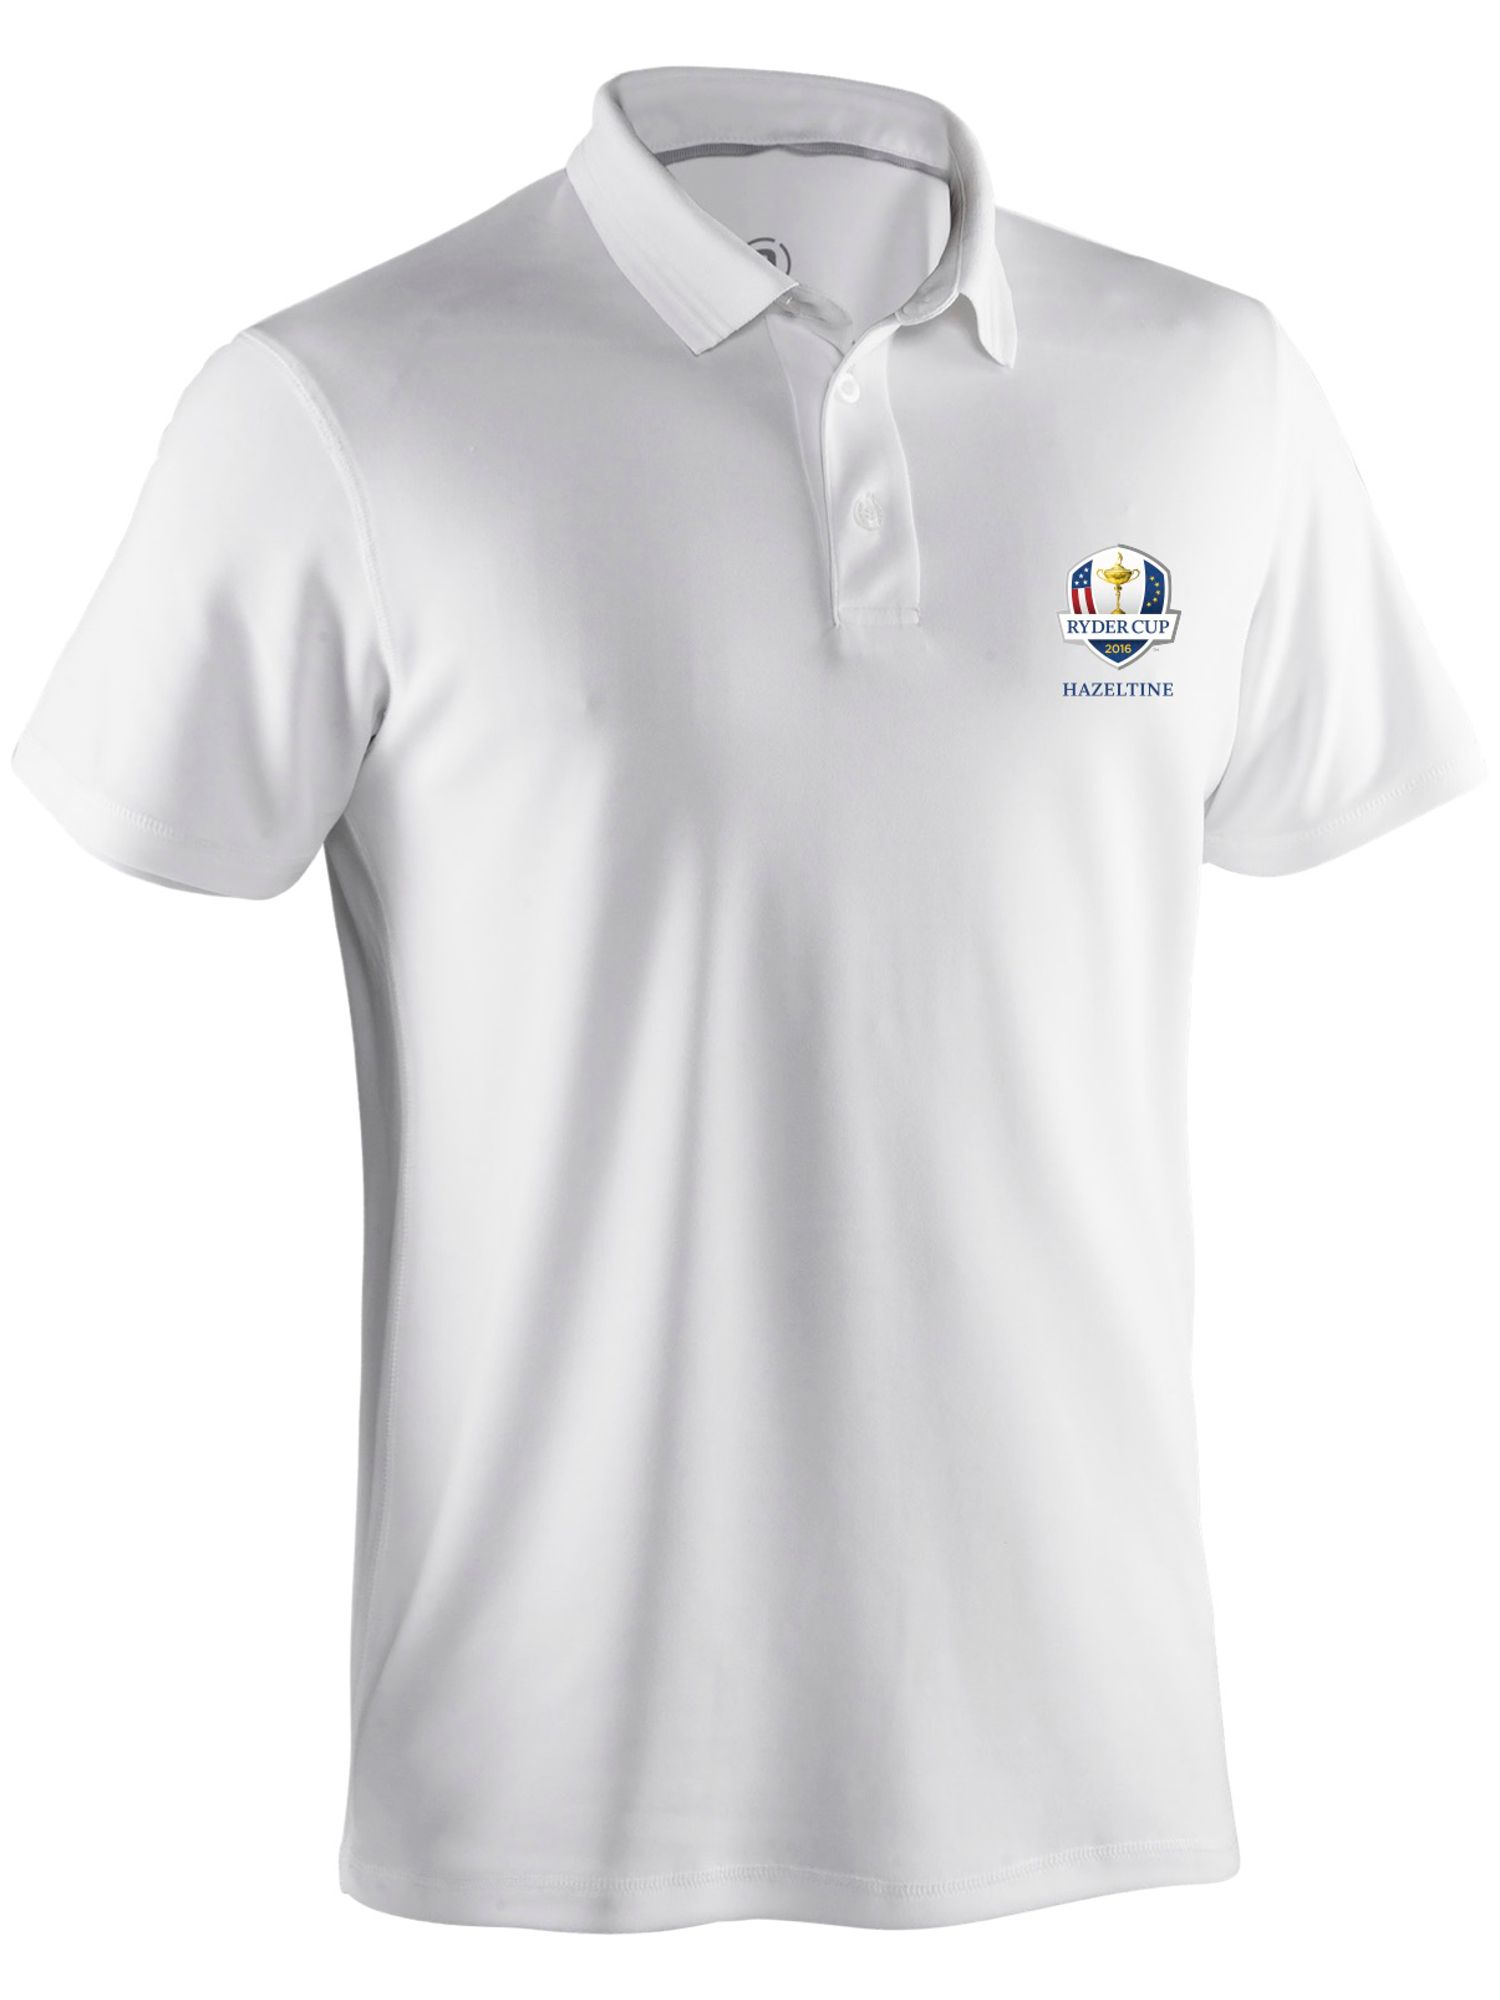 Abacus Men's Abacus Clark Ryder Cup Polo, White